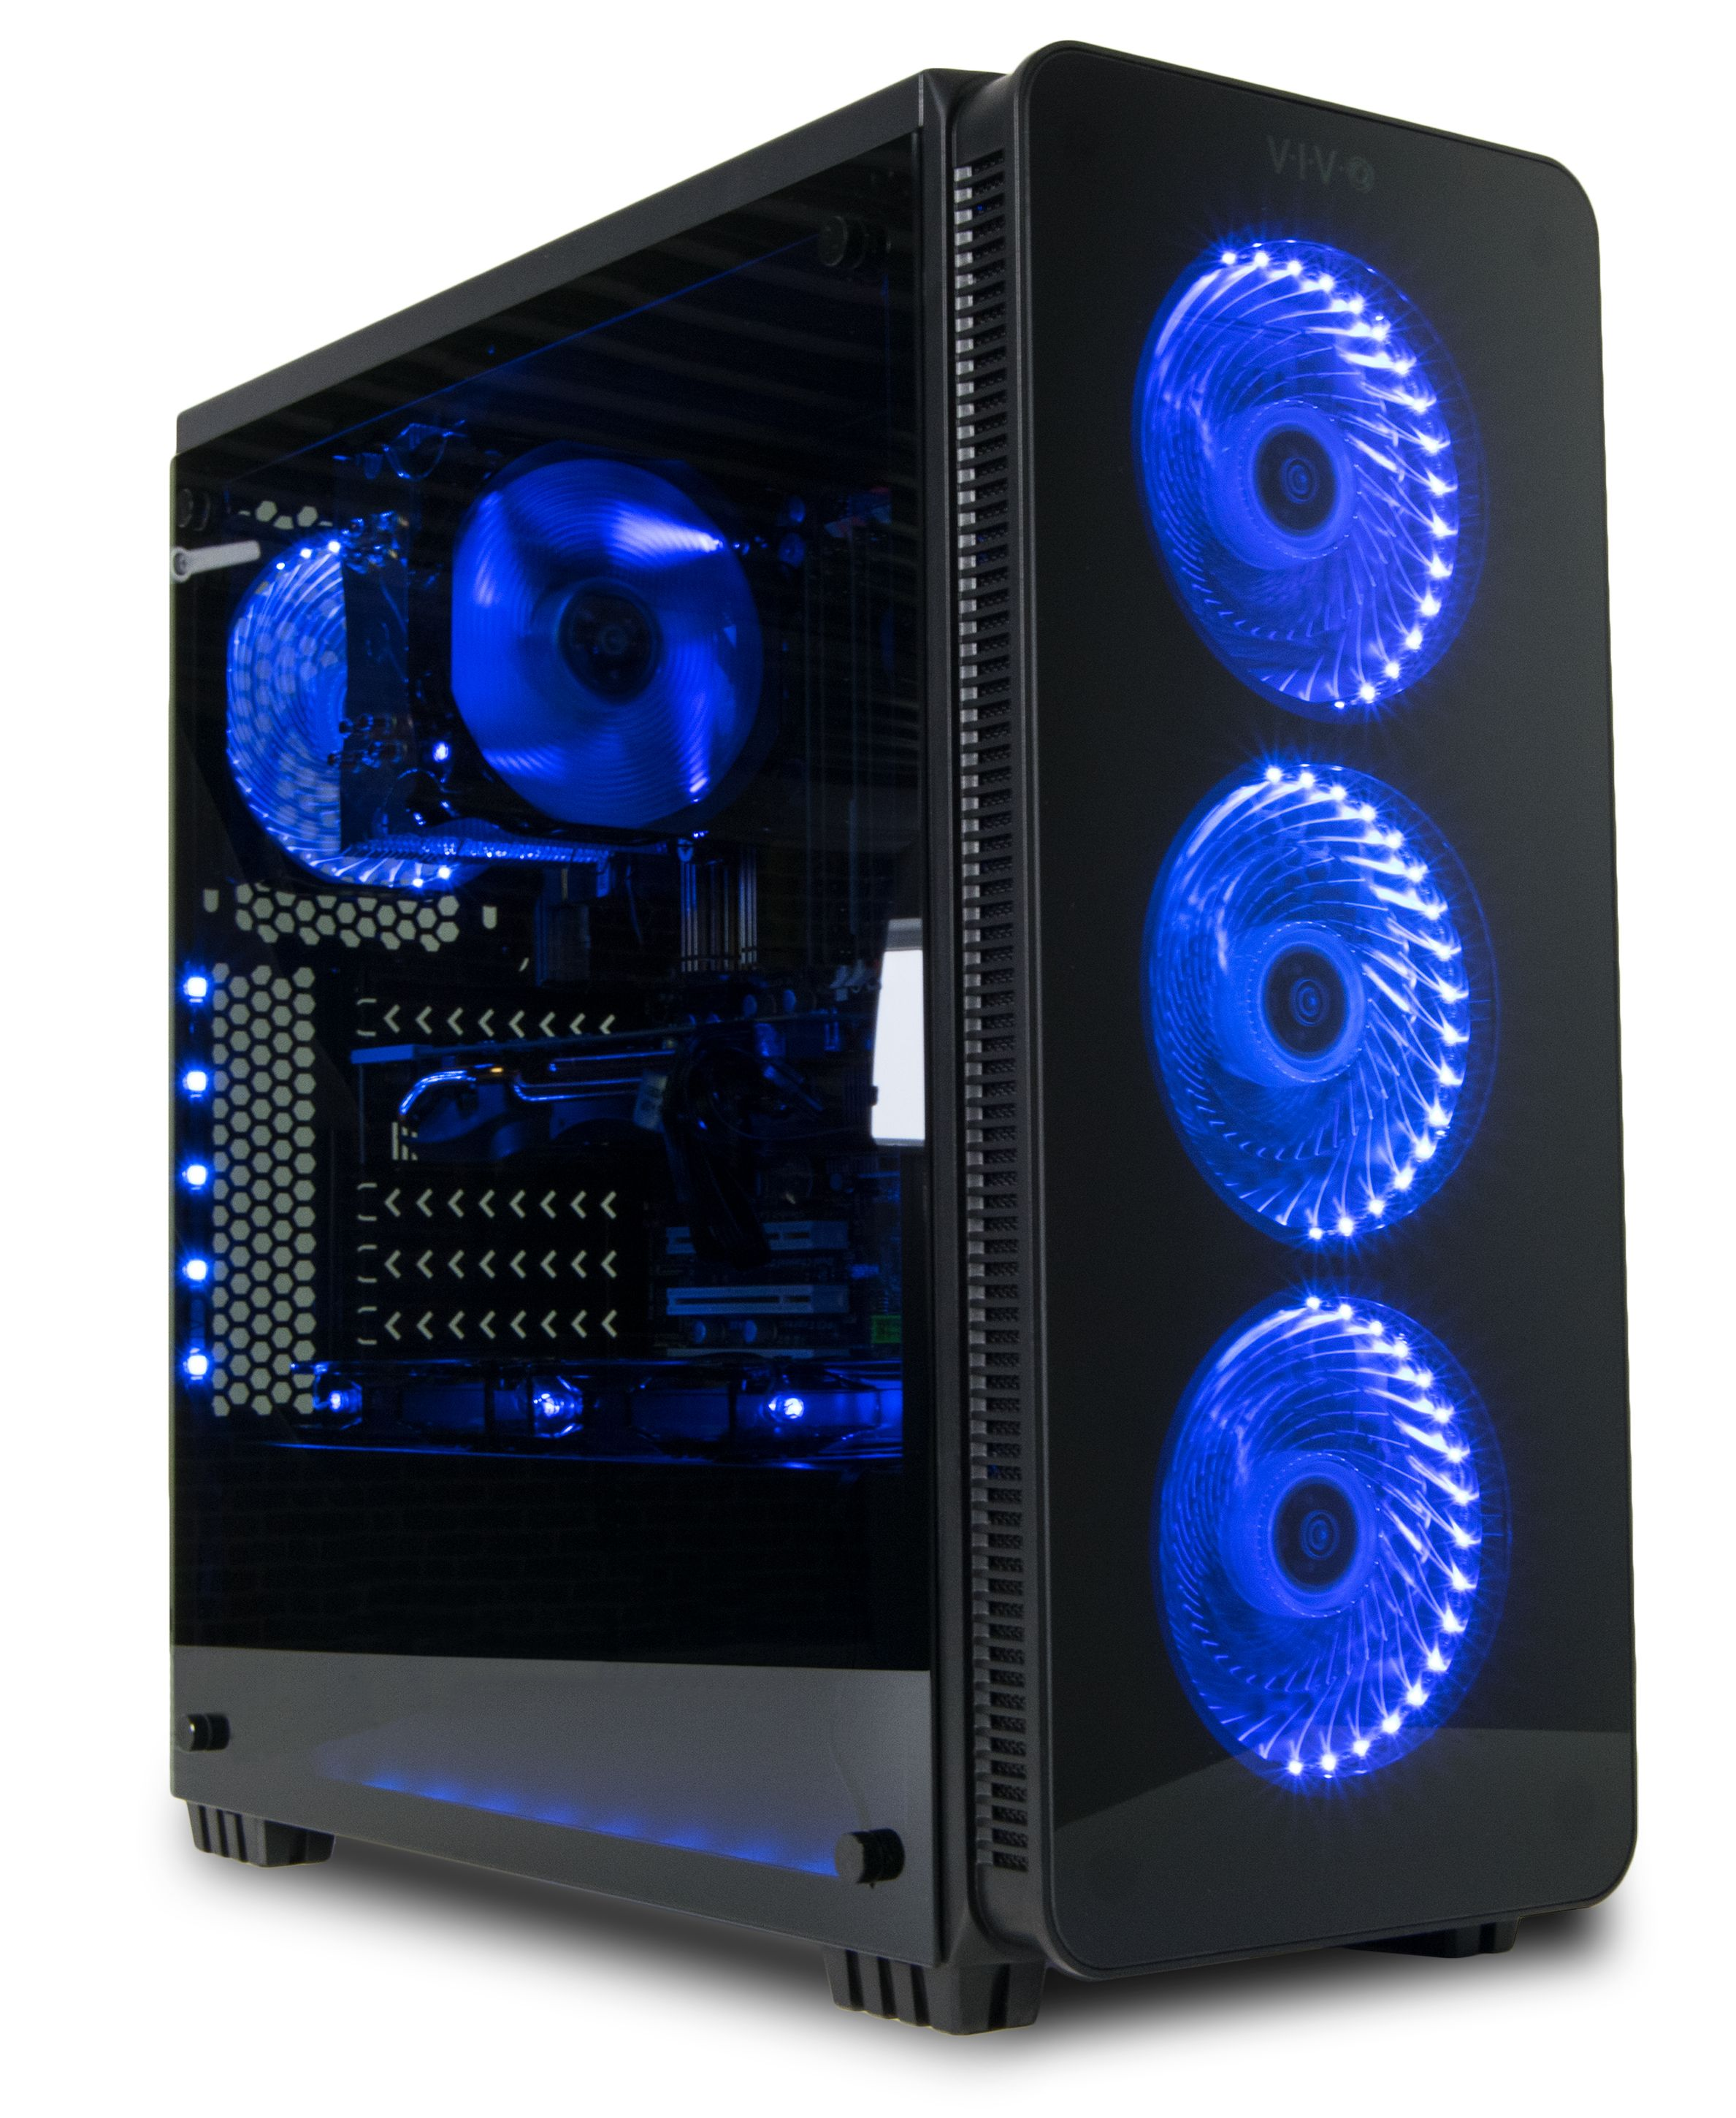 Case V08 Vivo Atx Mid Tower Computer Gaming Black Pc Case W